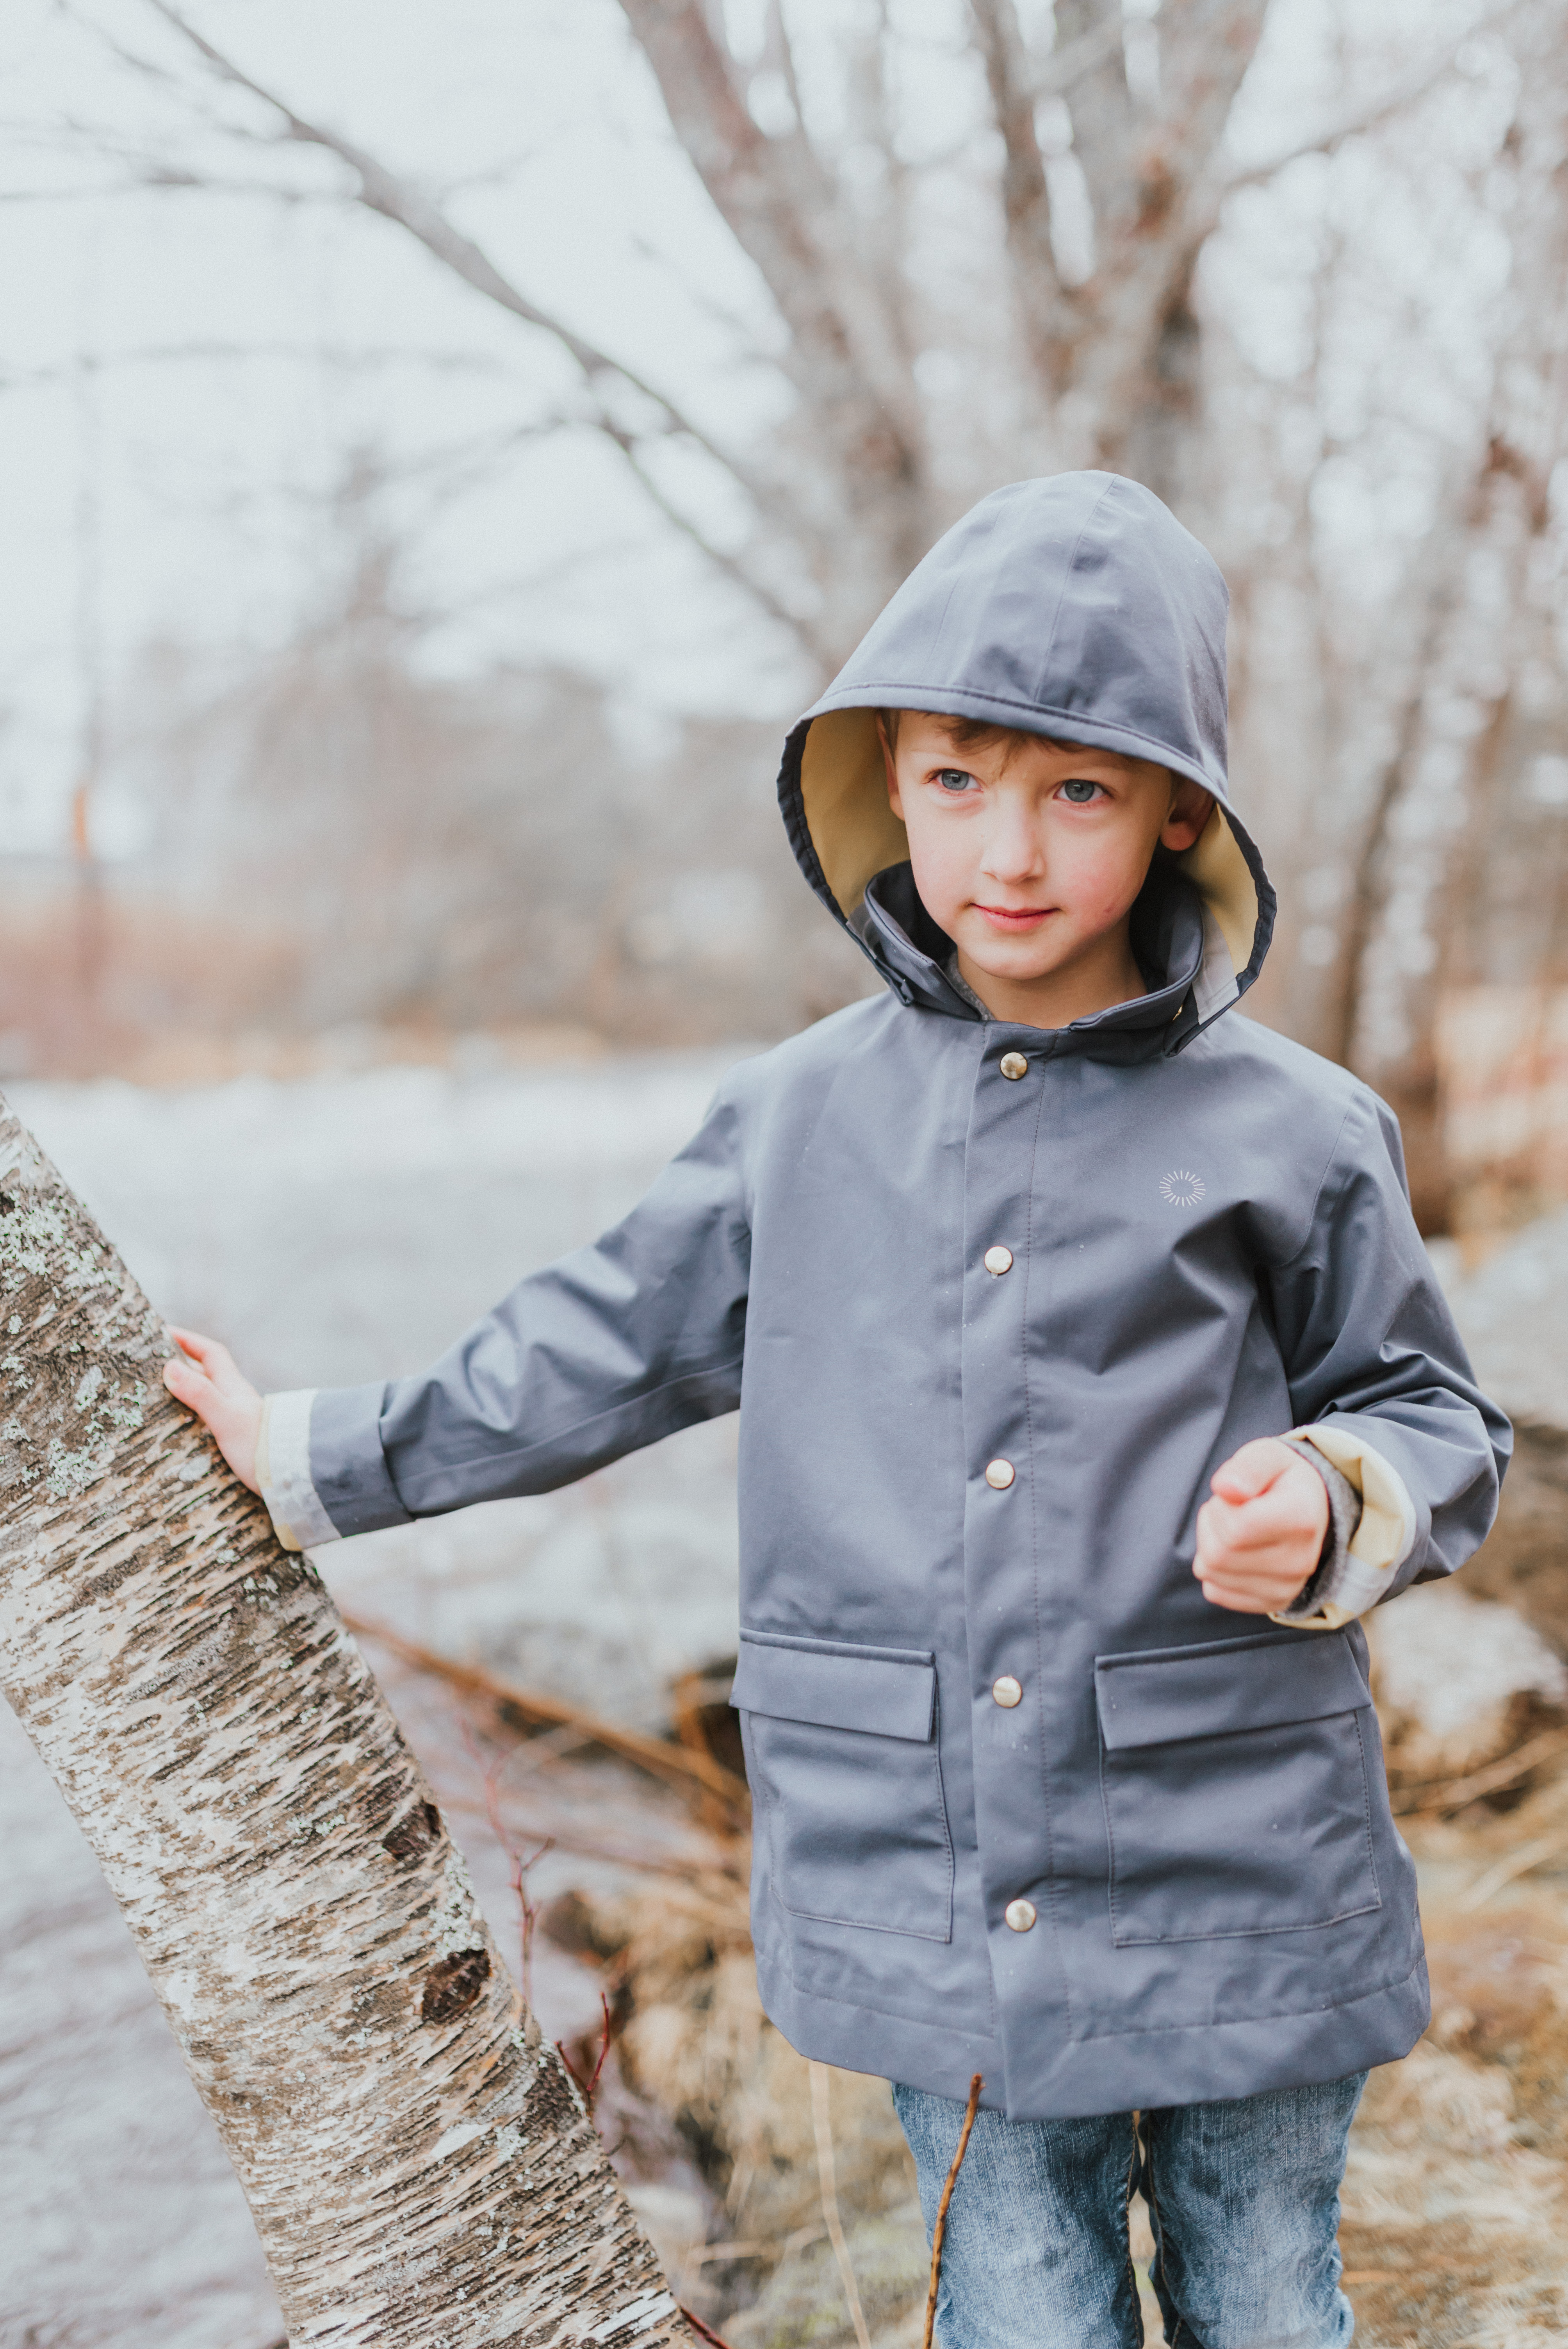 The Wild Decoelis | The Best Things To Do During Spring | Fairechild rain jacket